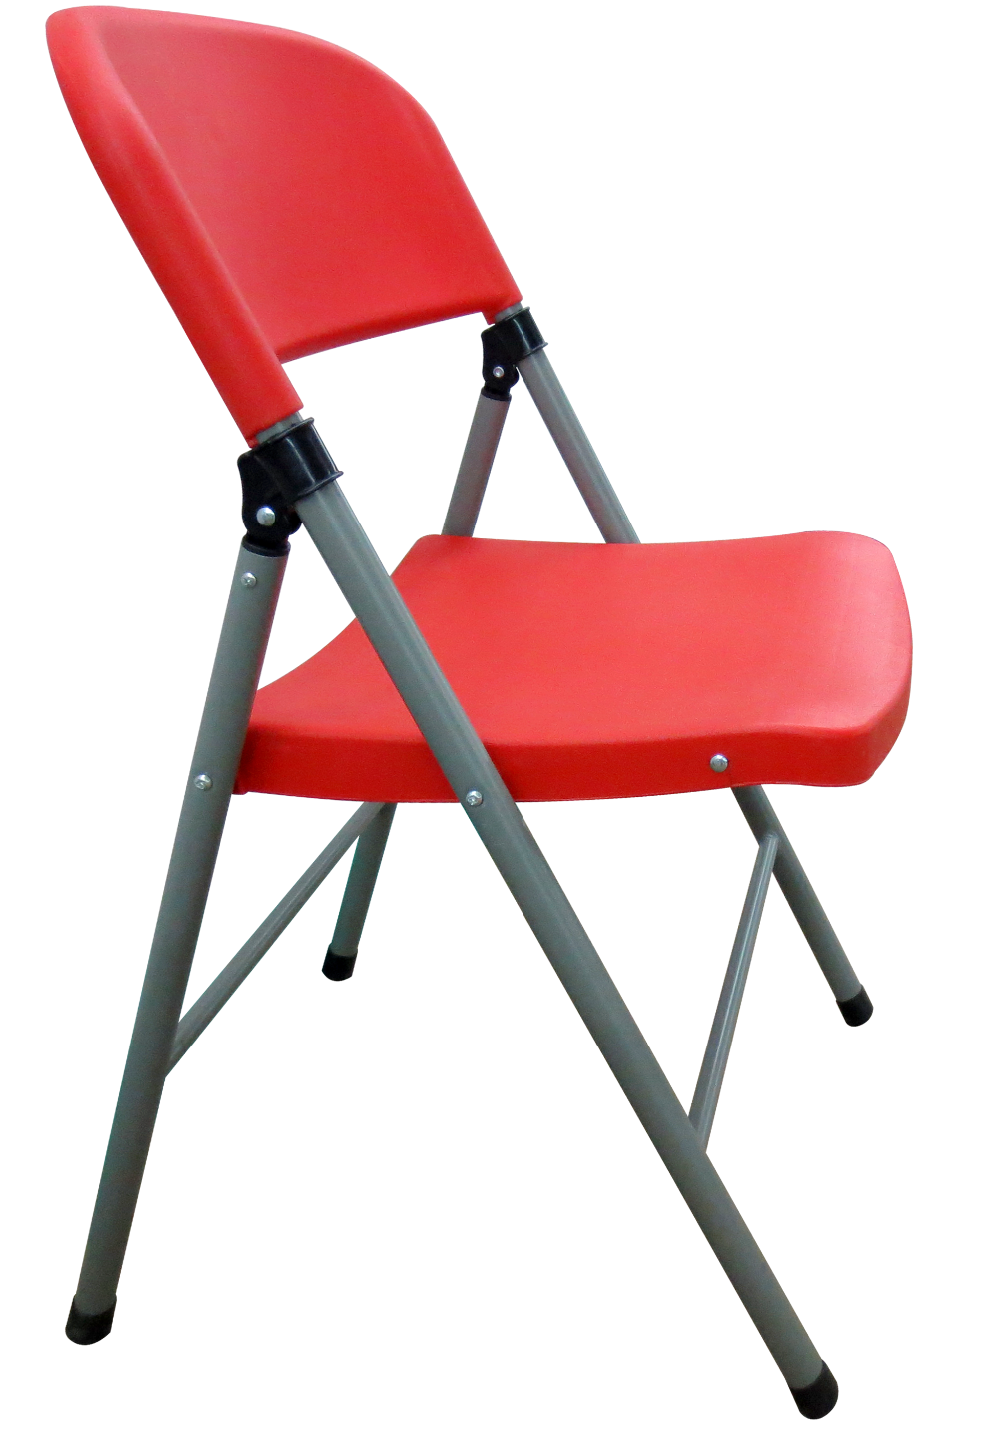 China Supplier Restaurant Chair Furniture Folding Dining